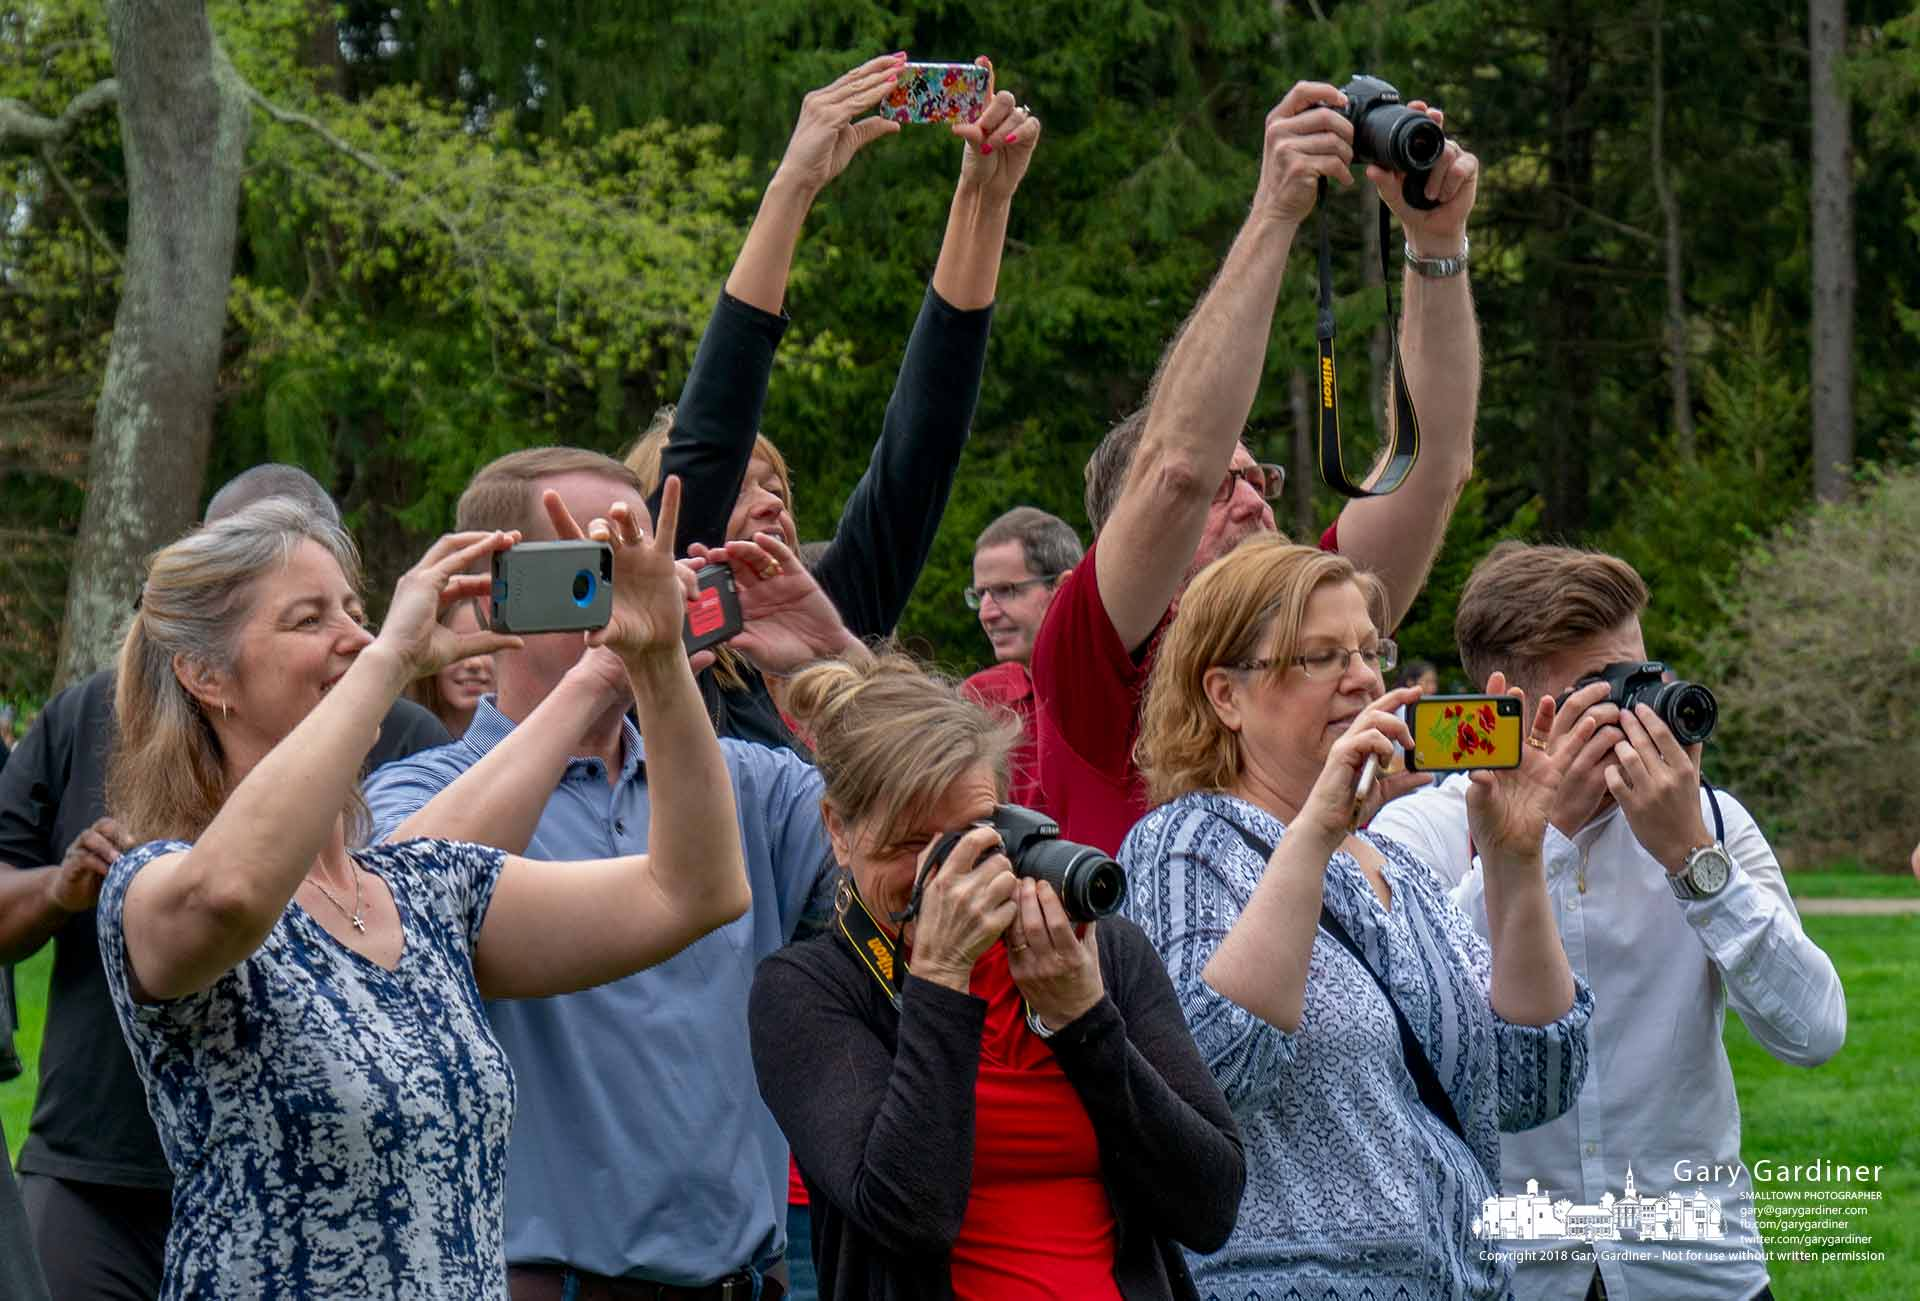 Parents use digital cameras and smartphones to photographtheir children posing in Inniswood Gardens before going to spring prom. My Final Photo for May 5, 2018.